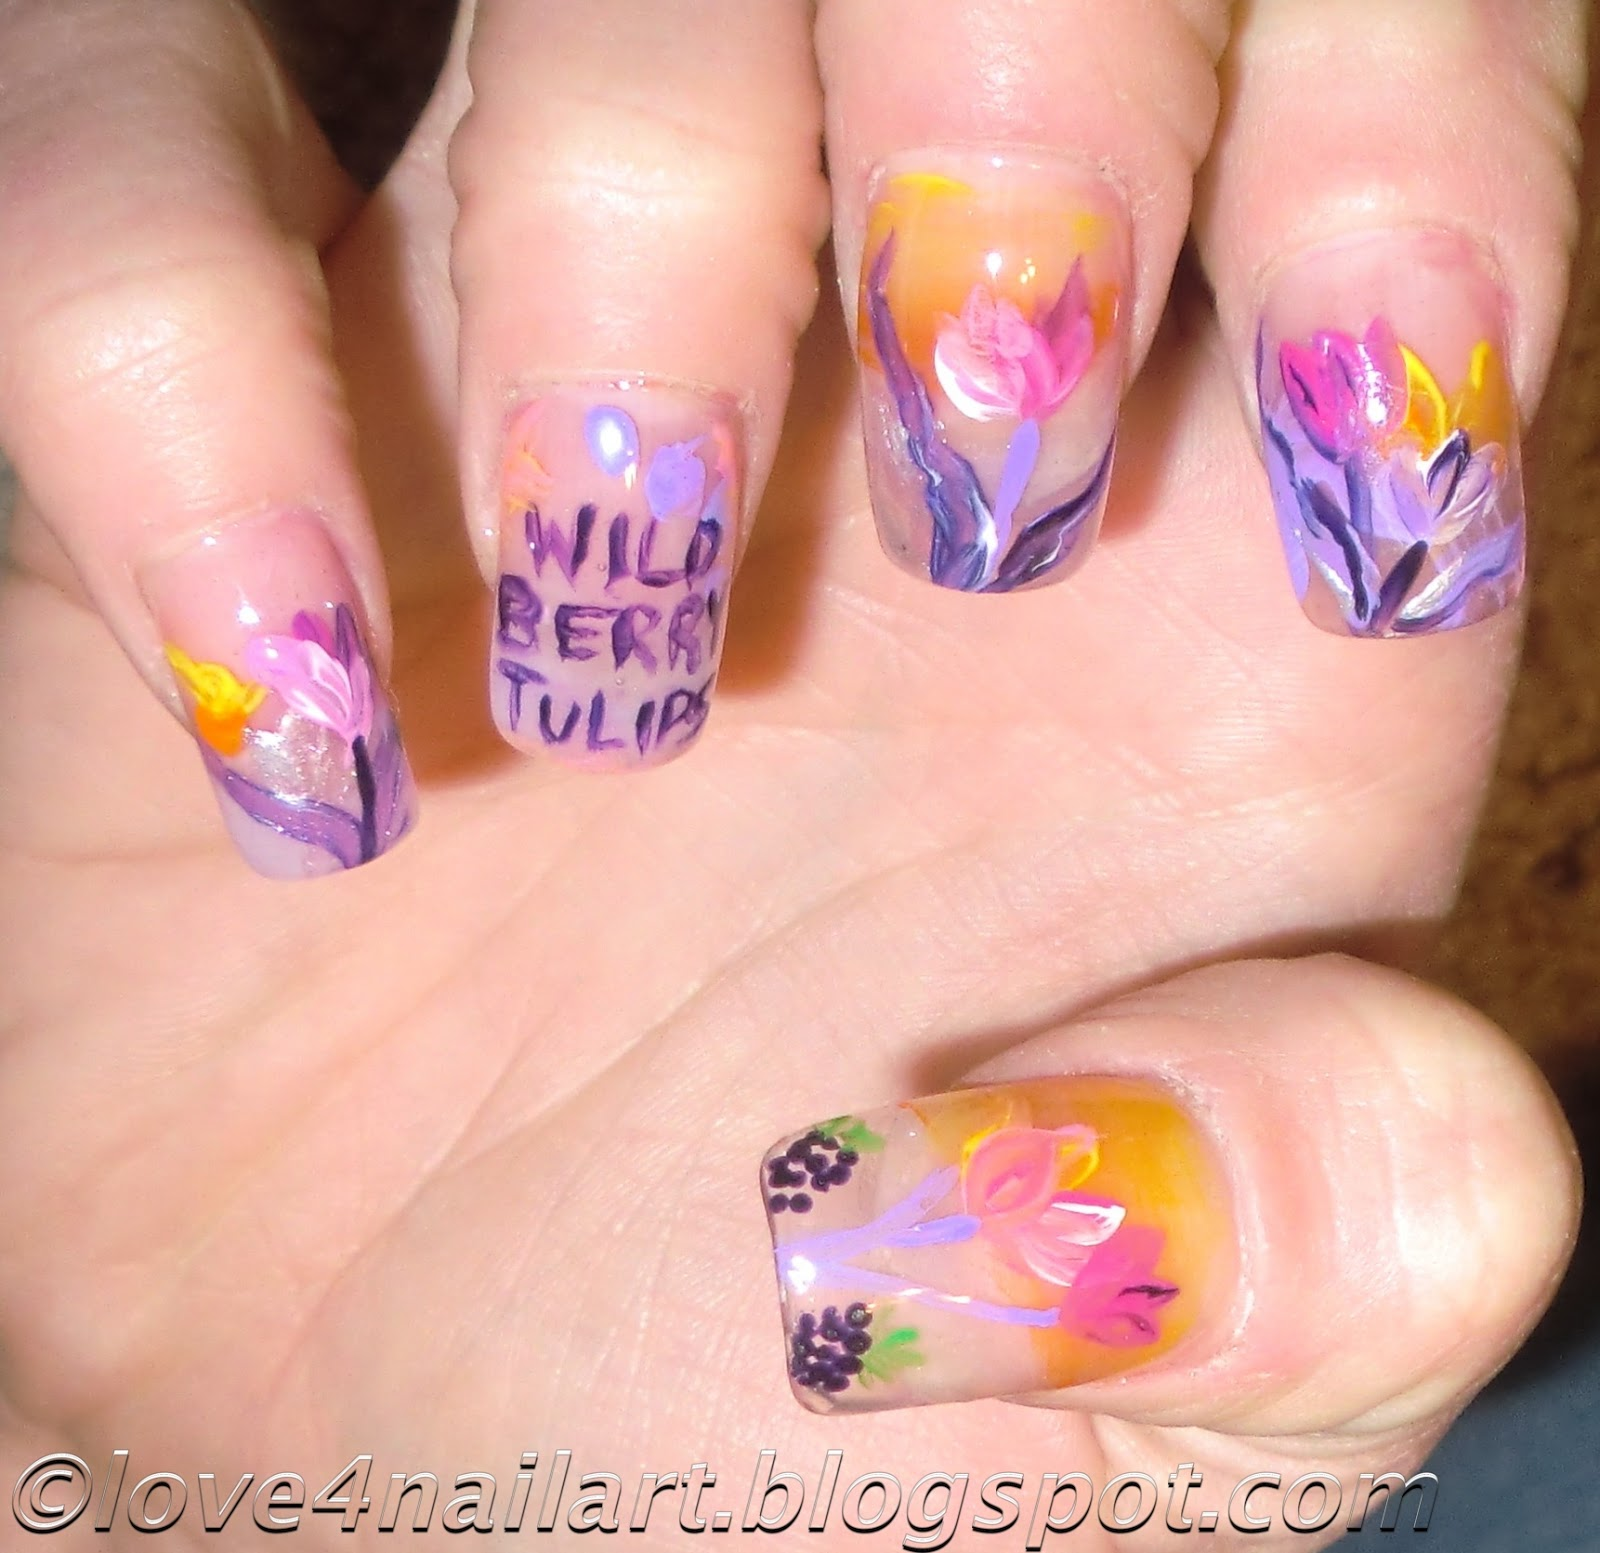 BBW - Wild Berry Tulips & Wild Apple Daffodil Nail Design